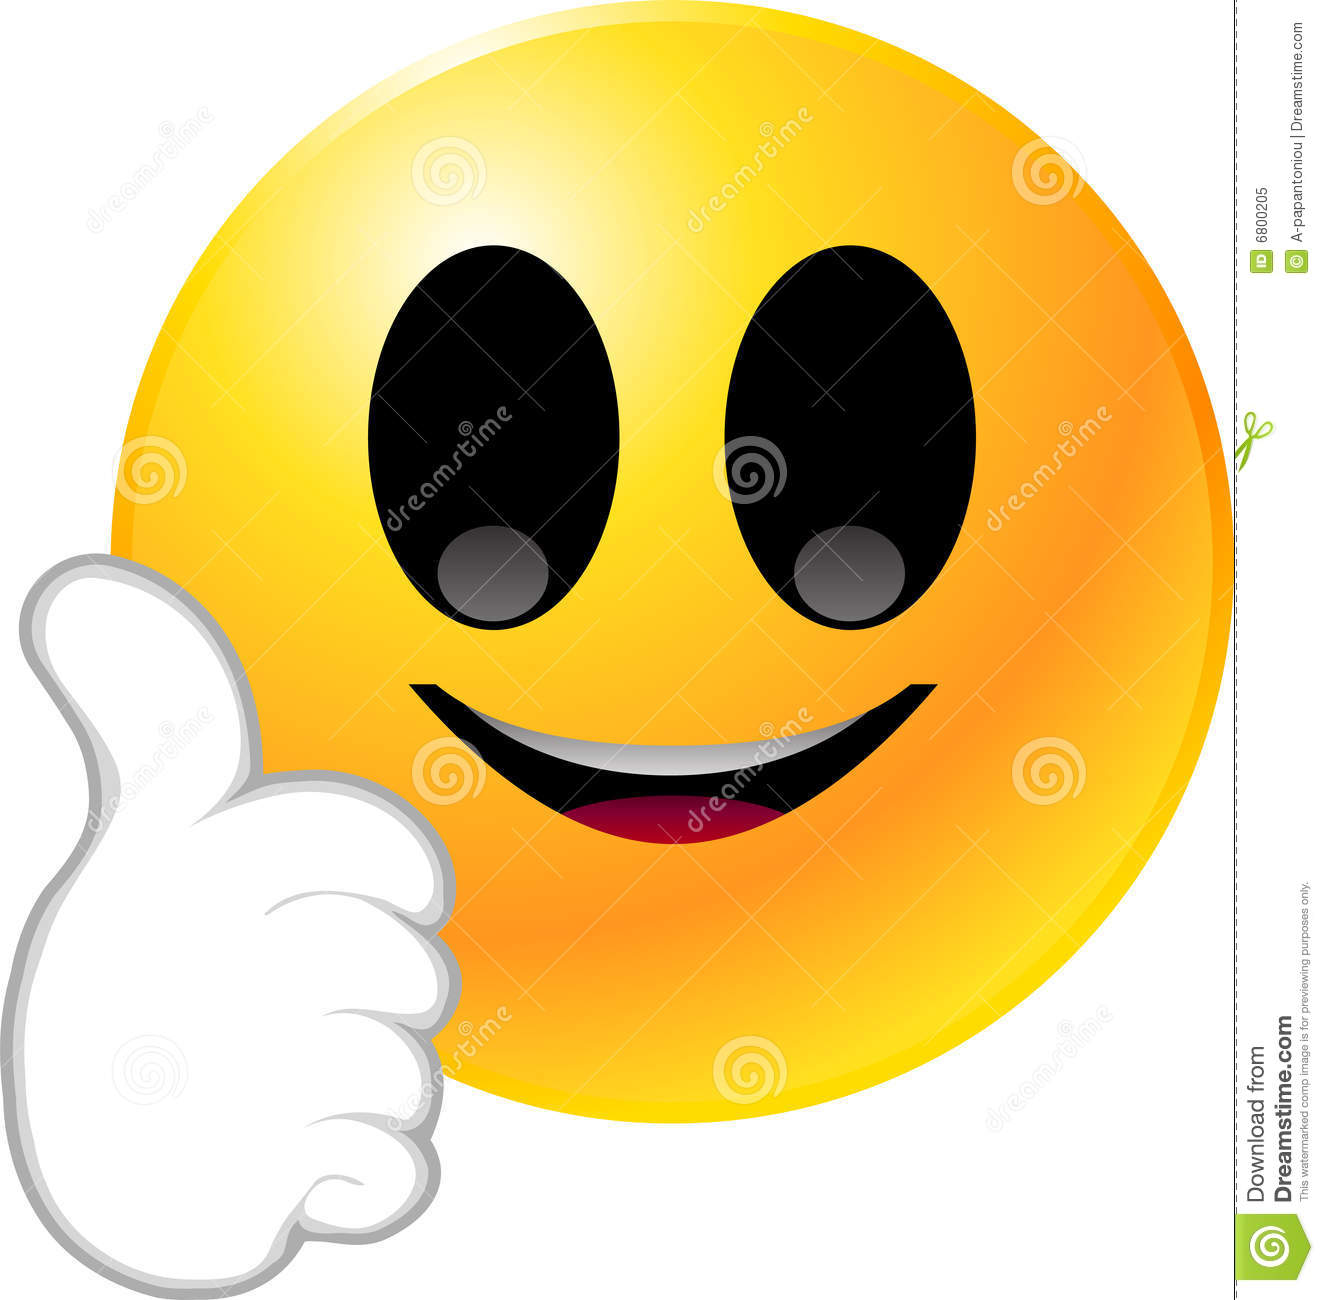 Smiley Face Clip Art Thumbs Up | Clipart library - Free Clipart Images - Free PNG HD Smiley Face Thumbs Up